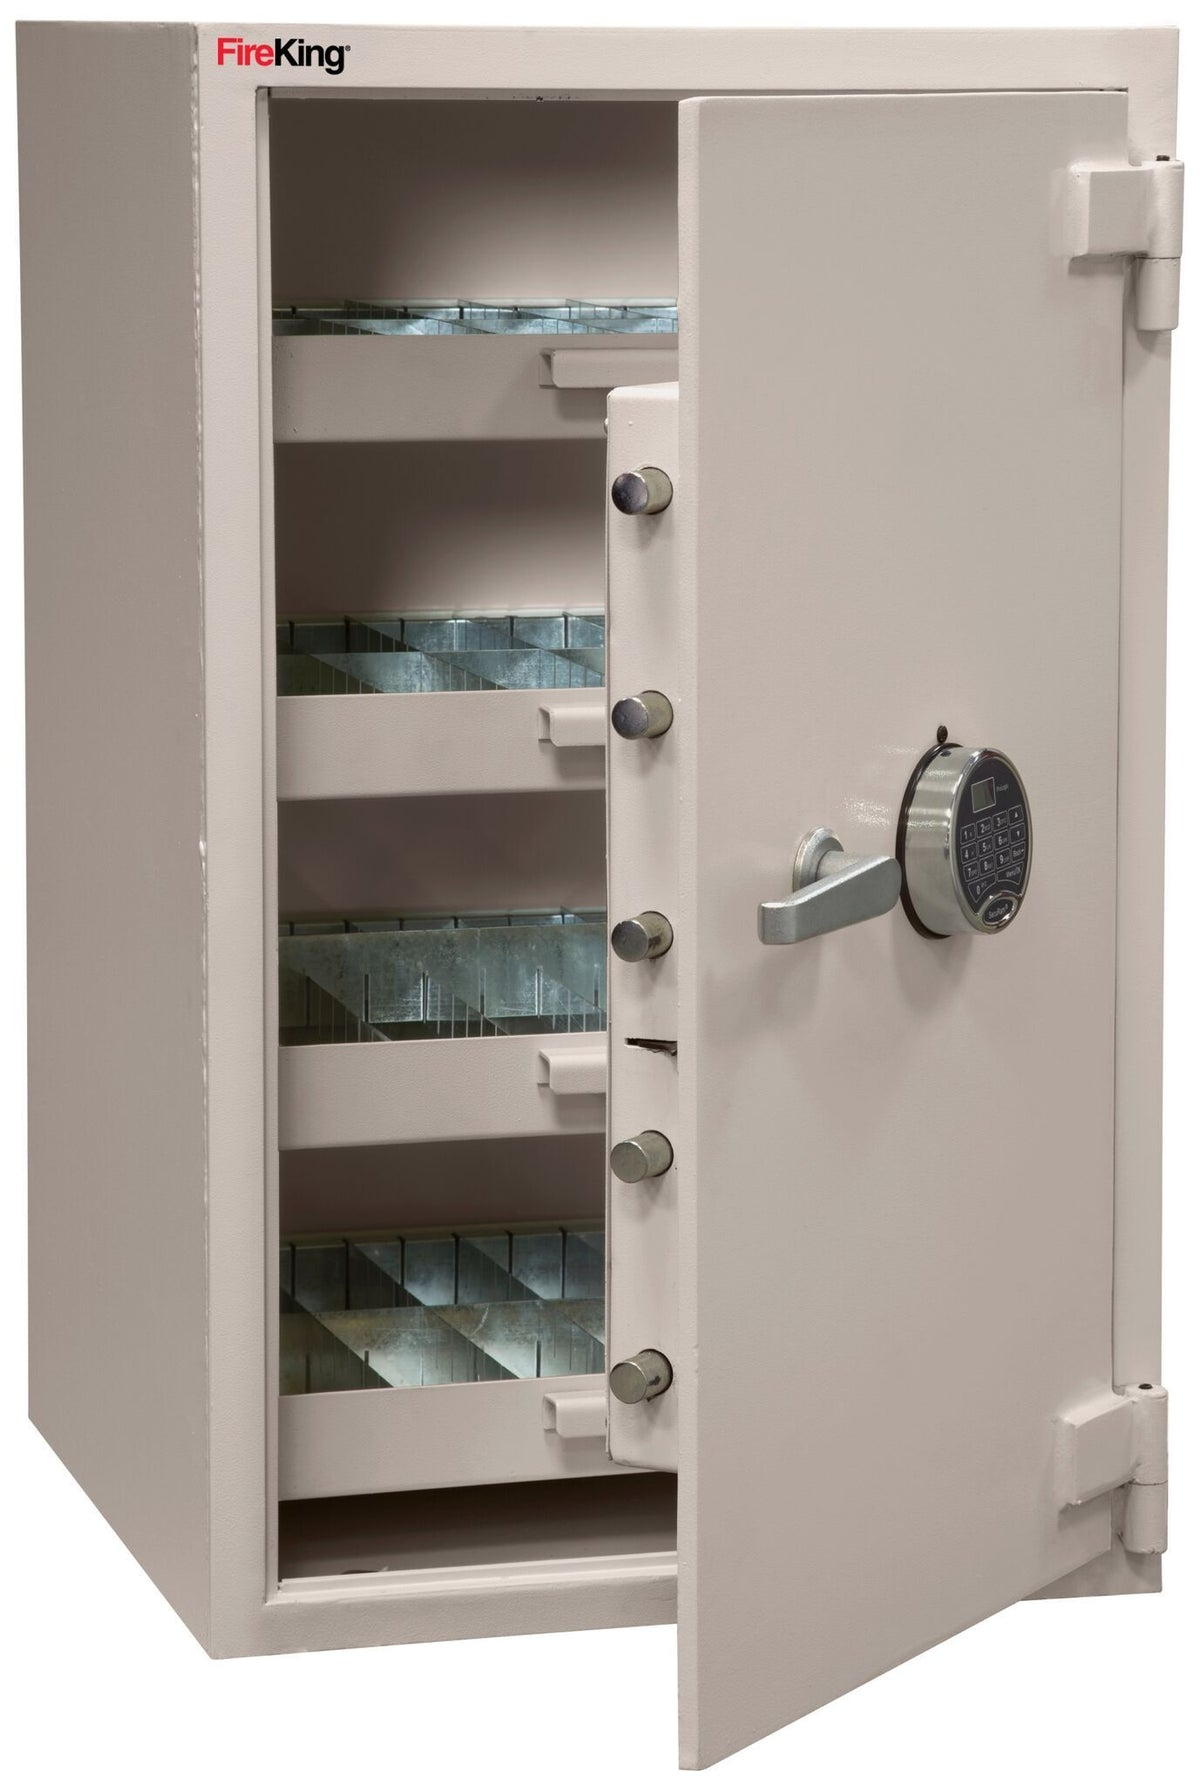 FireKing B3521WD-FK1 Pharmacy Safe